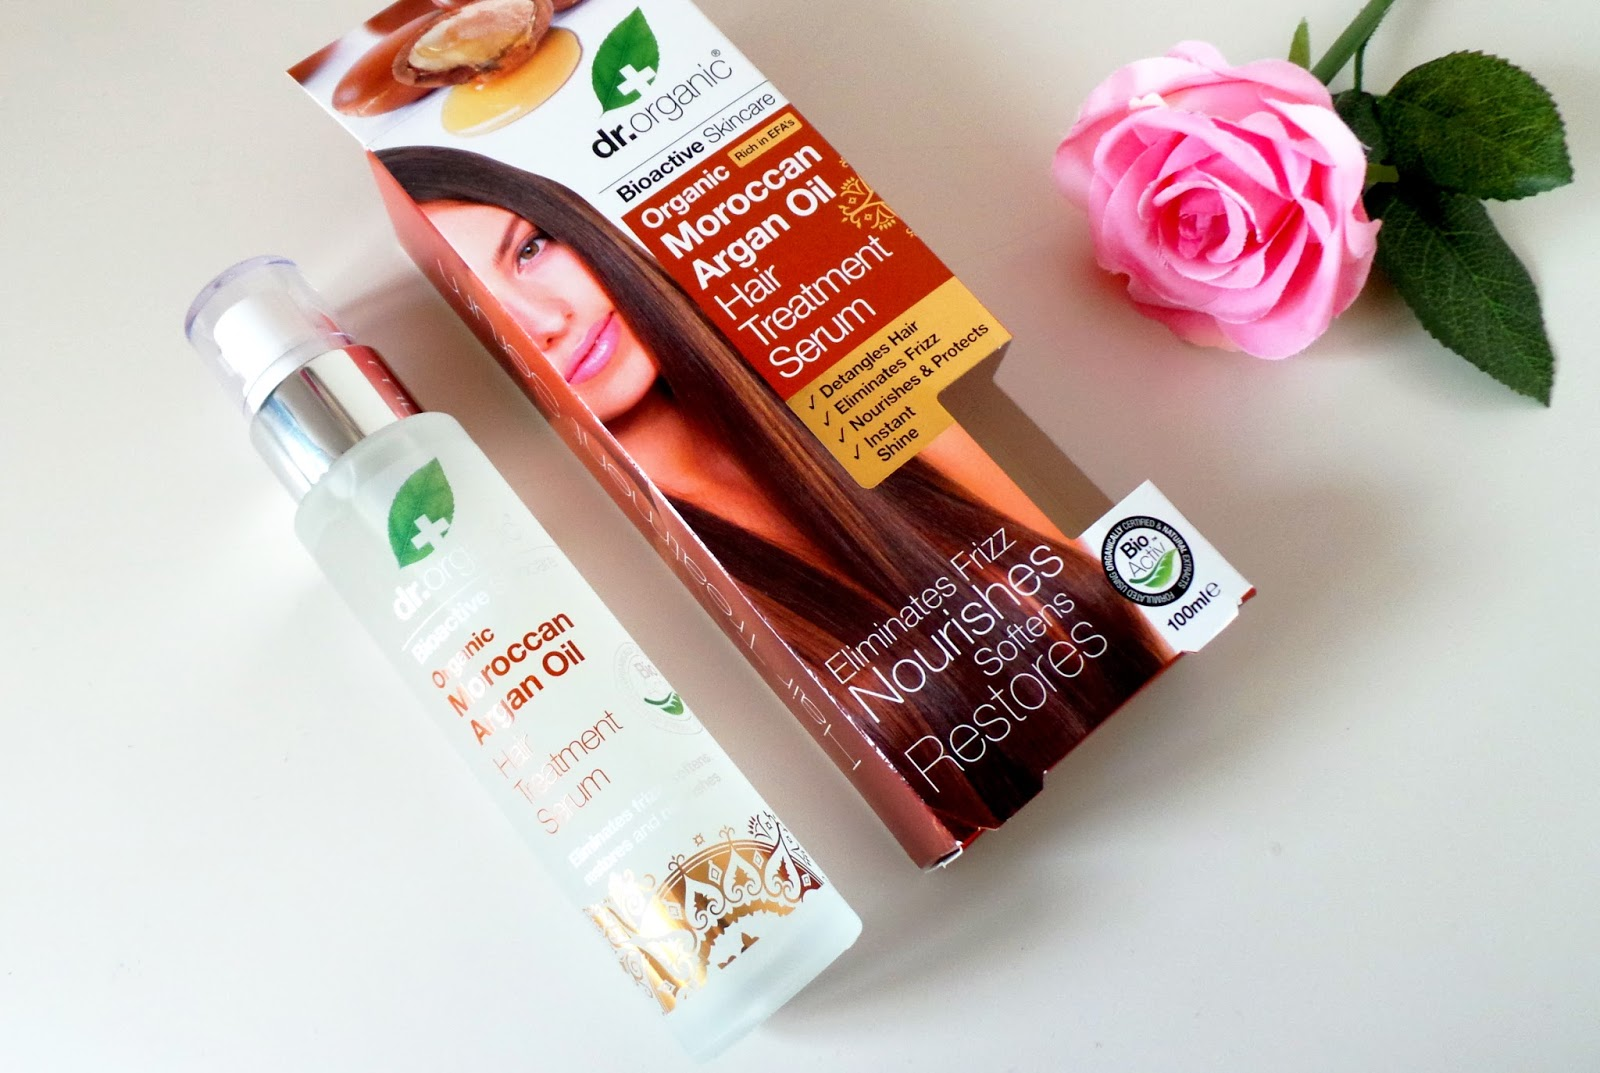 Dr. Organic Moroccan Argan Oil Hair Treatment Serum Review